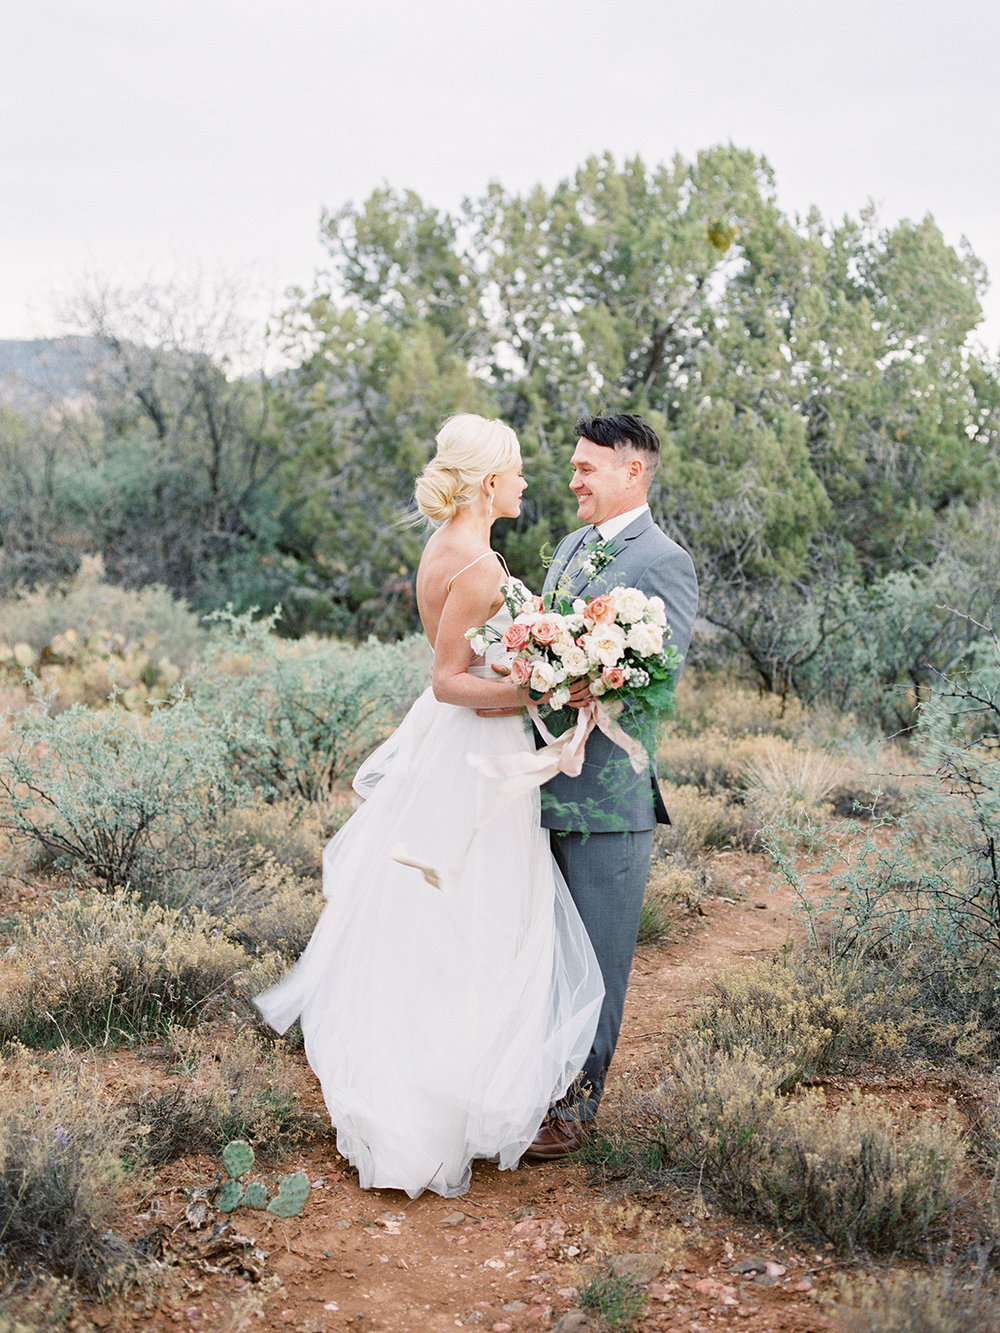 York Sedona Elopement - Ball Photo Co Fine Art Film Wedding Photography-55.jpg